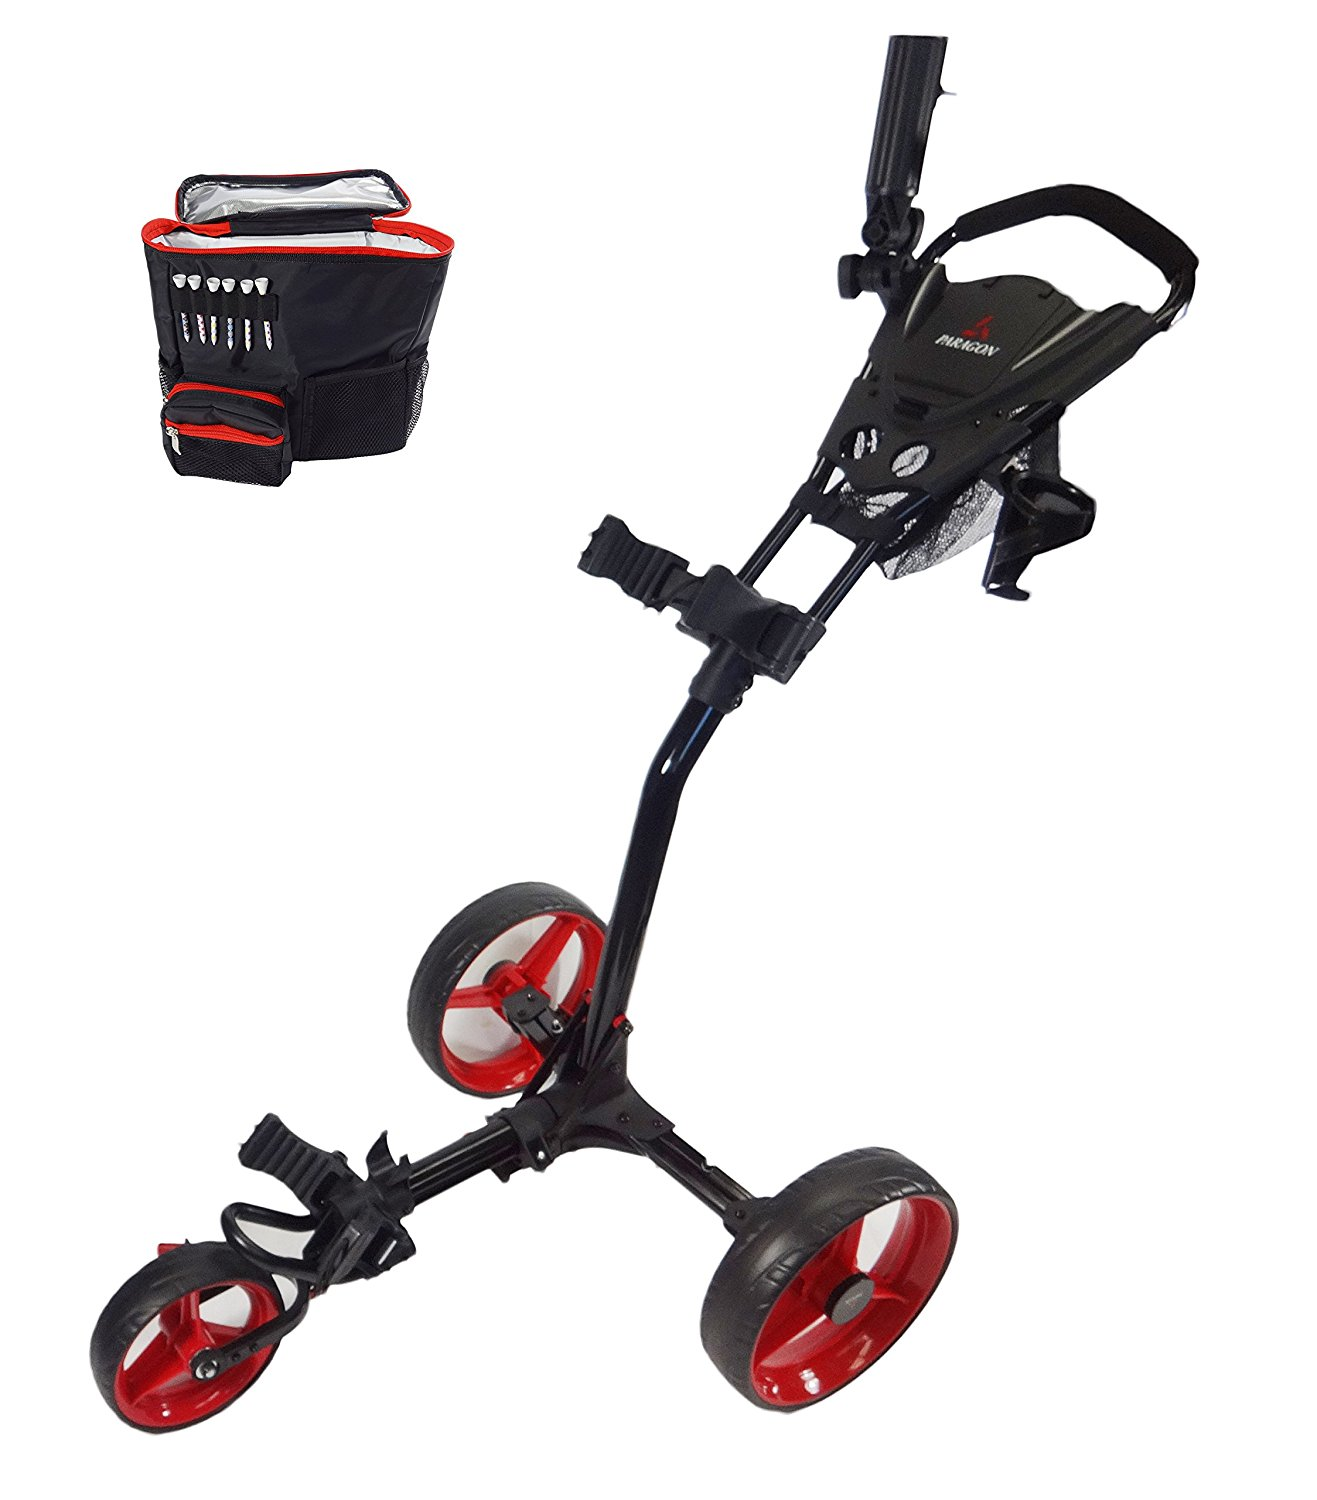 paragon 3-wheelie golf push cart, best golf push cart for juniors